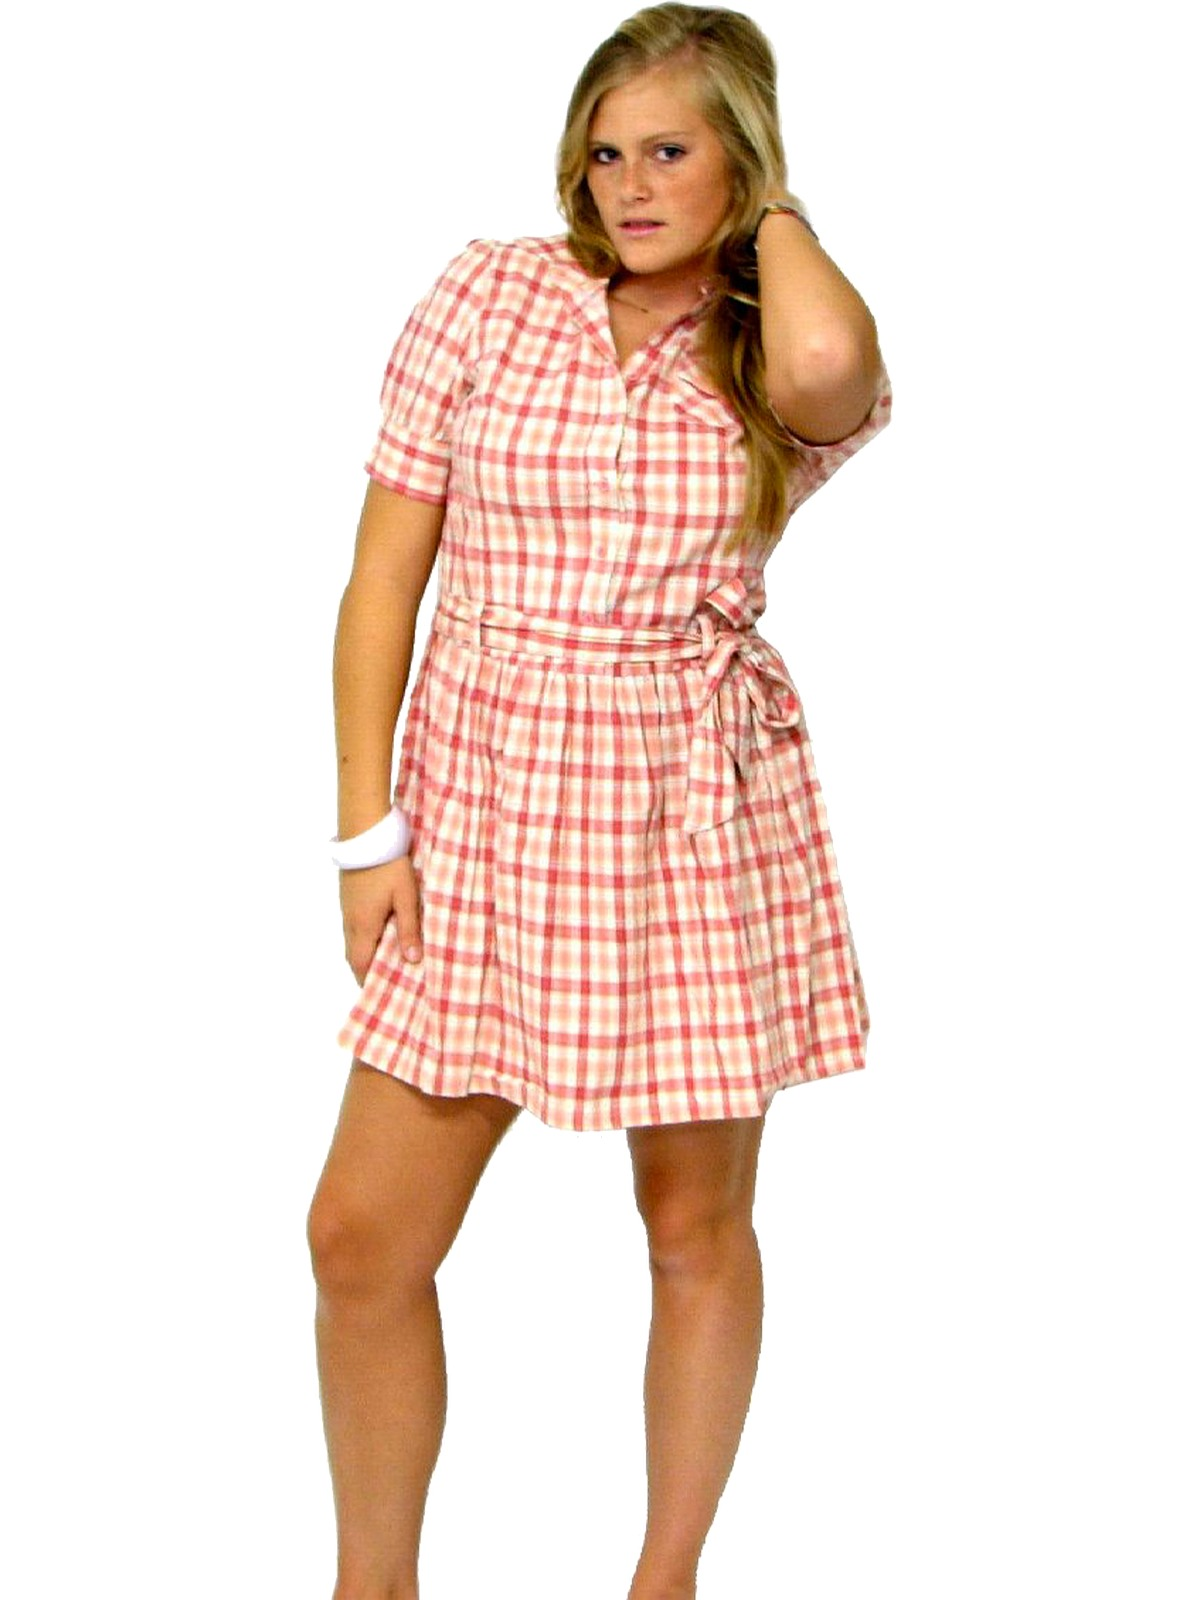 Retro 1950s Mini Dress 50s Style Dmbm Womens Soft Berry Pink And White Somewhat Nubby Textured Cotton Plaid Short Sleeve Inspired Shirtwaist